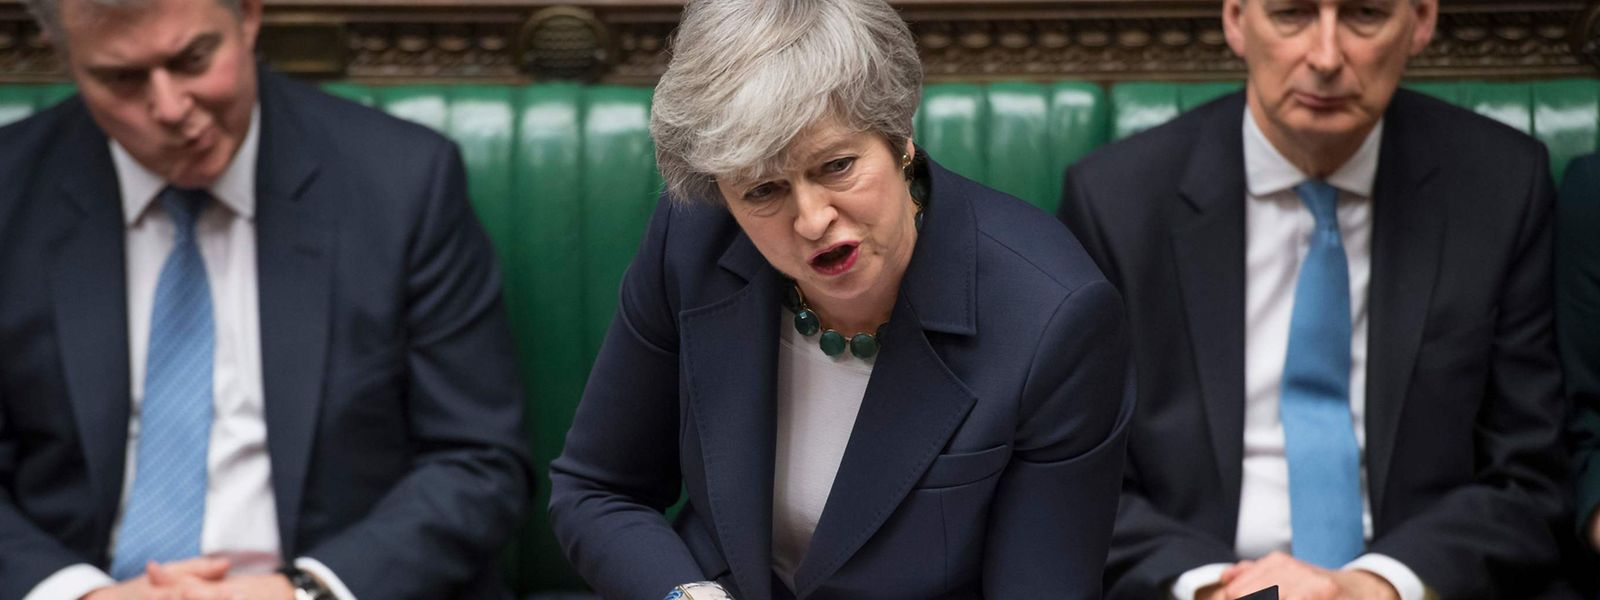 Deal or no deal? Theresa May spricht am Mittwoch im Parlament.